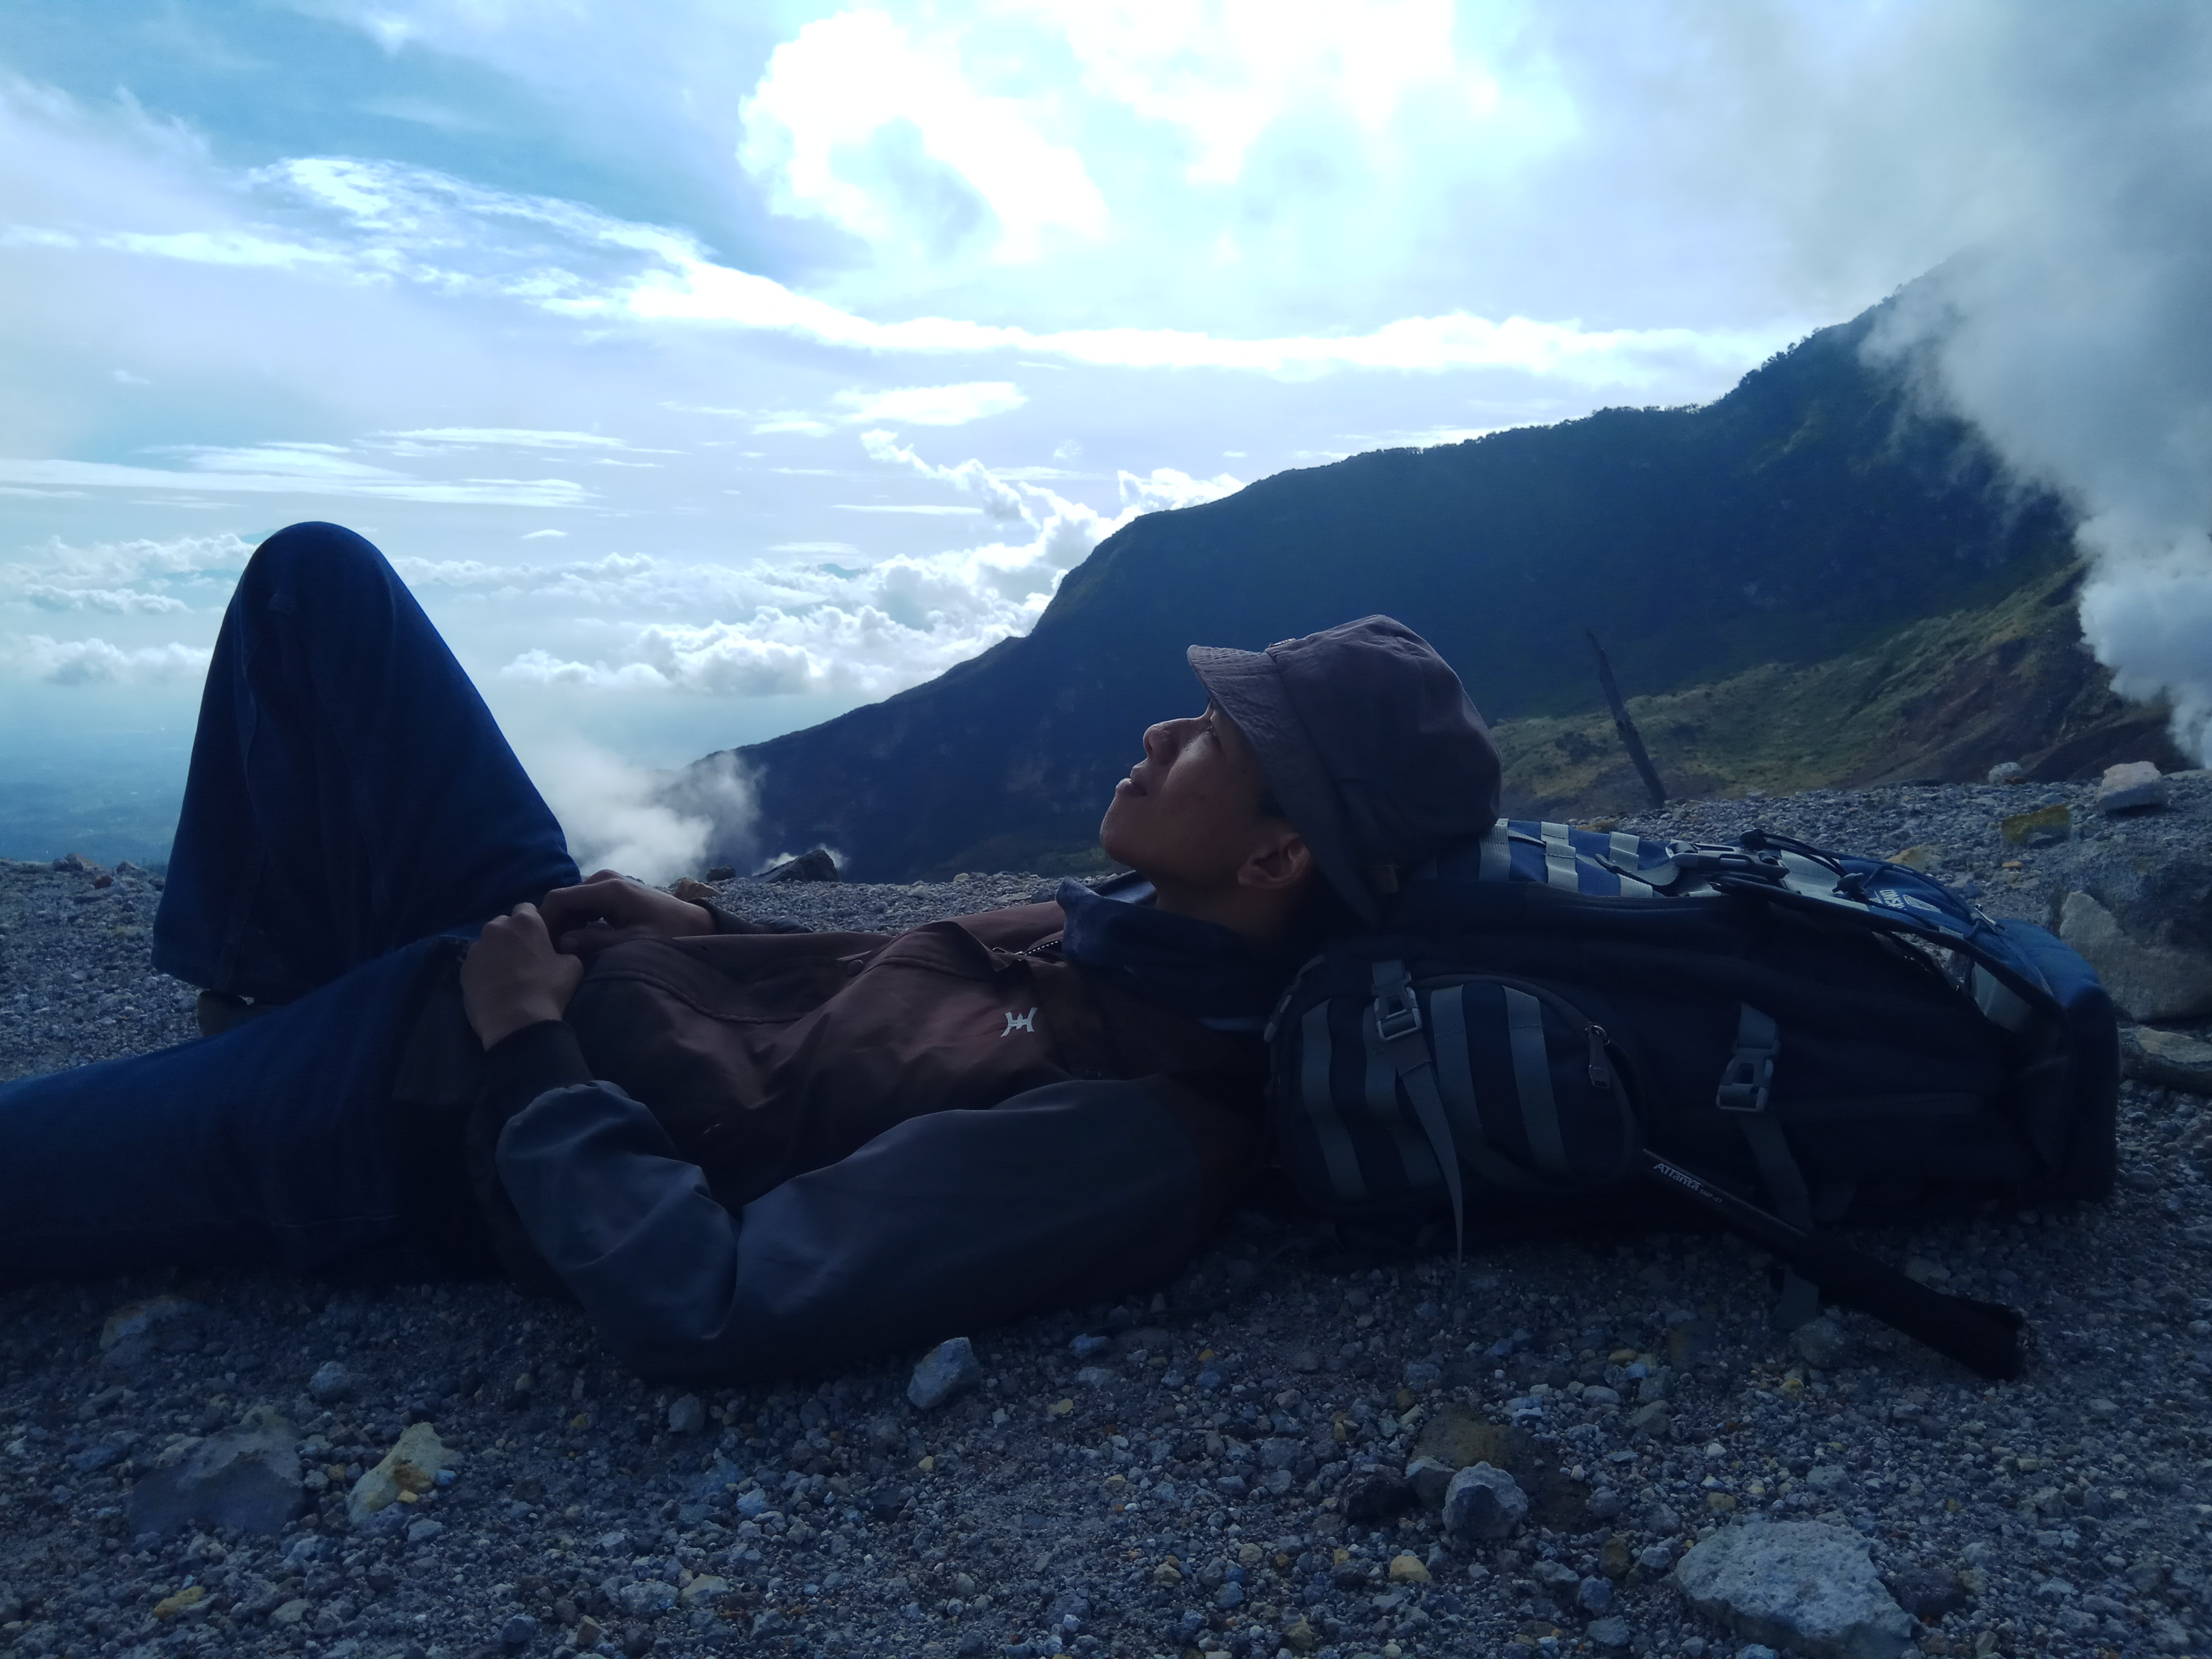 The Nativestalker at Gunung Papandayan